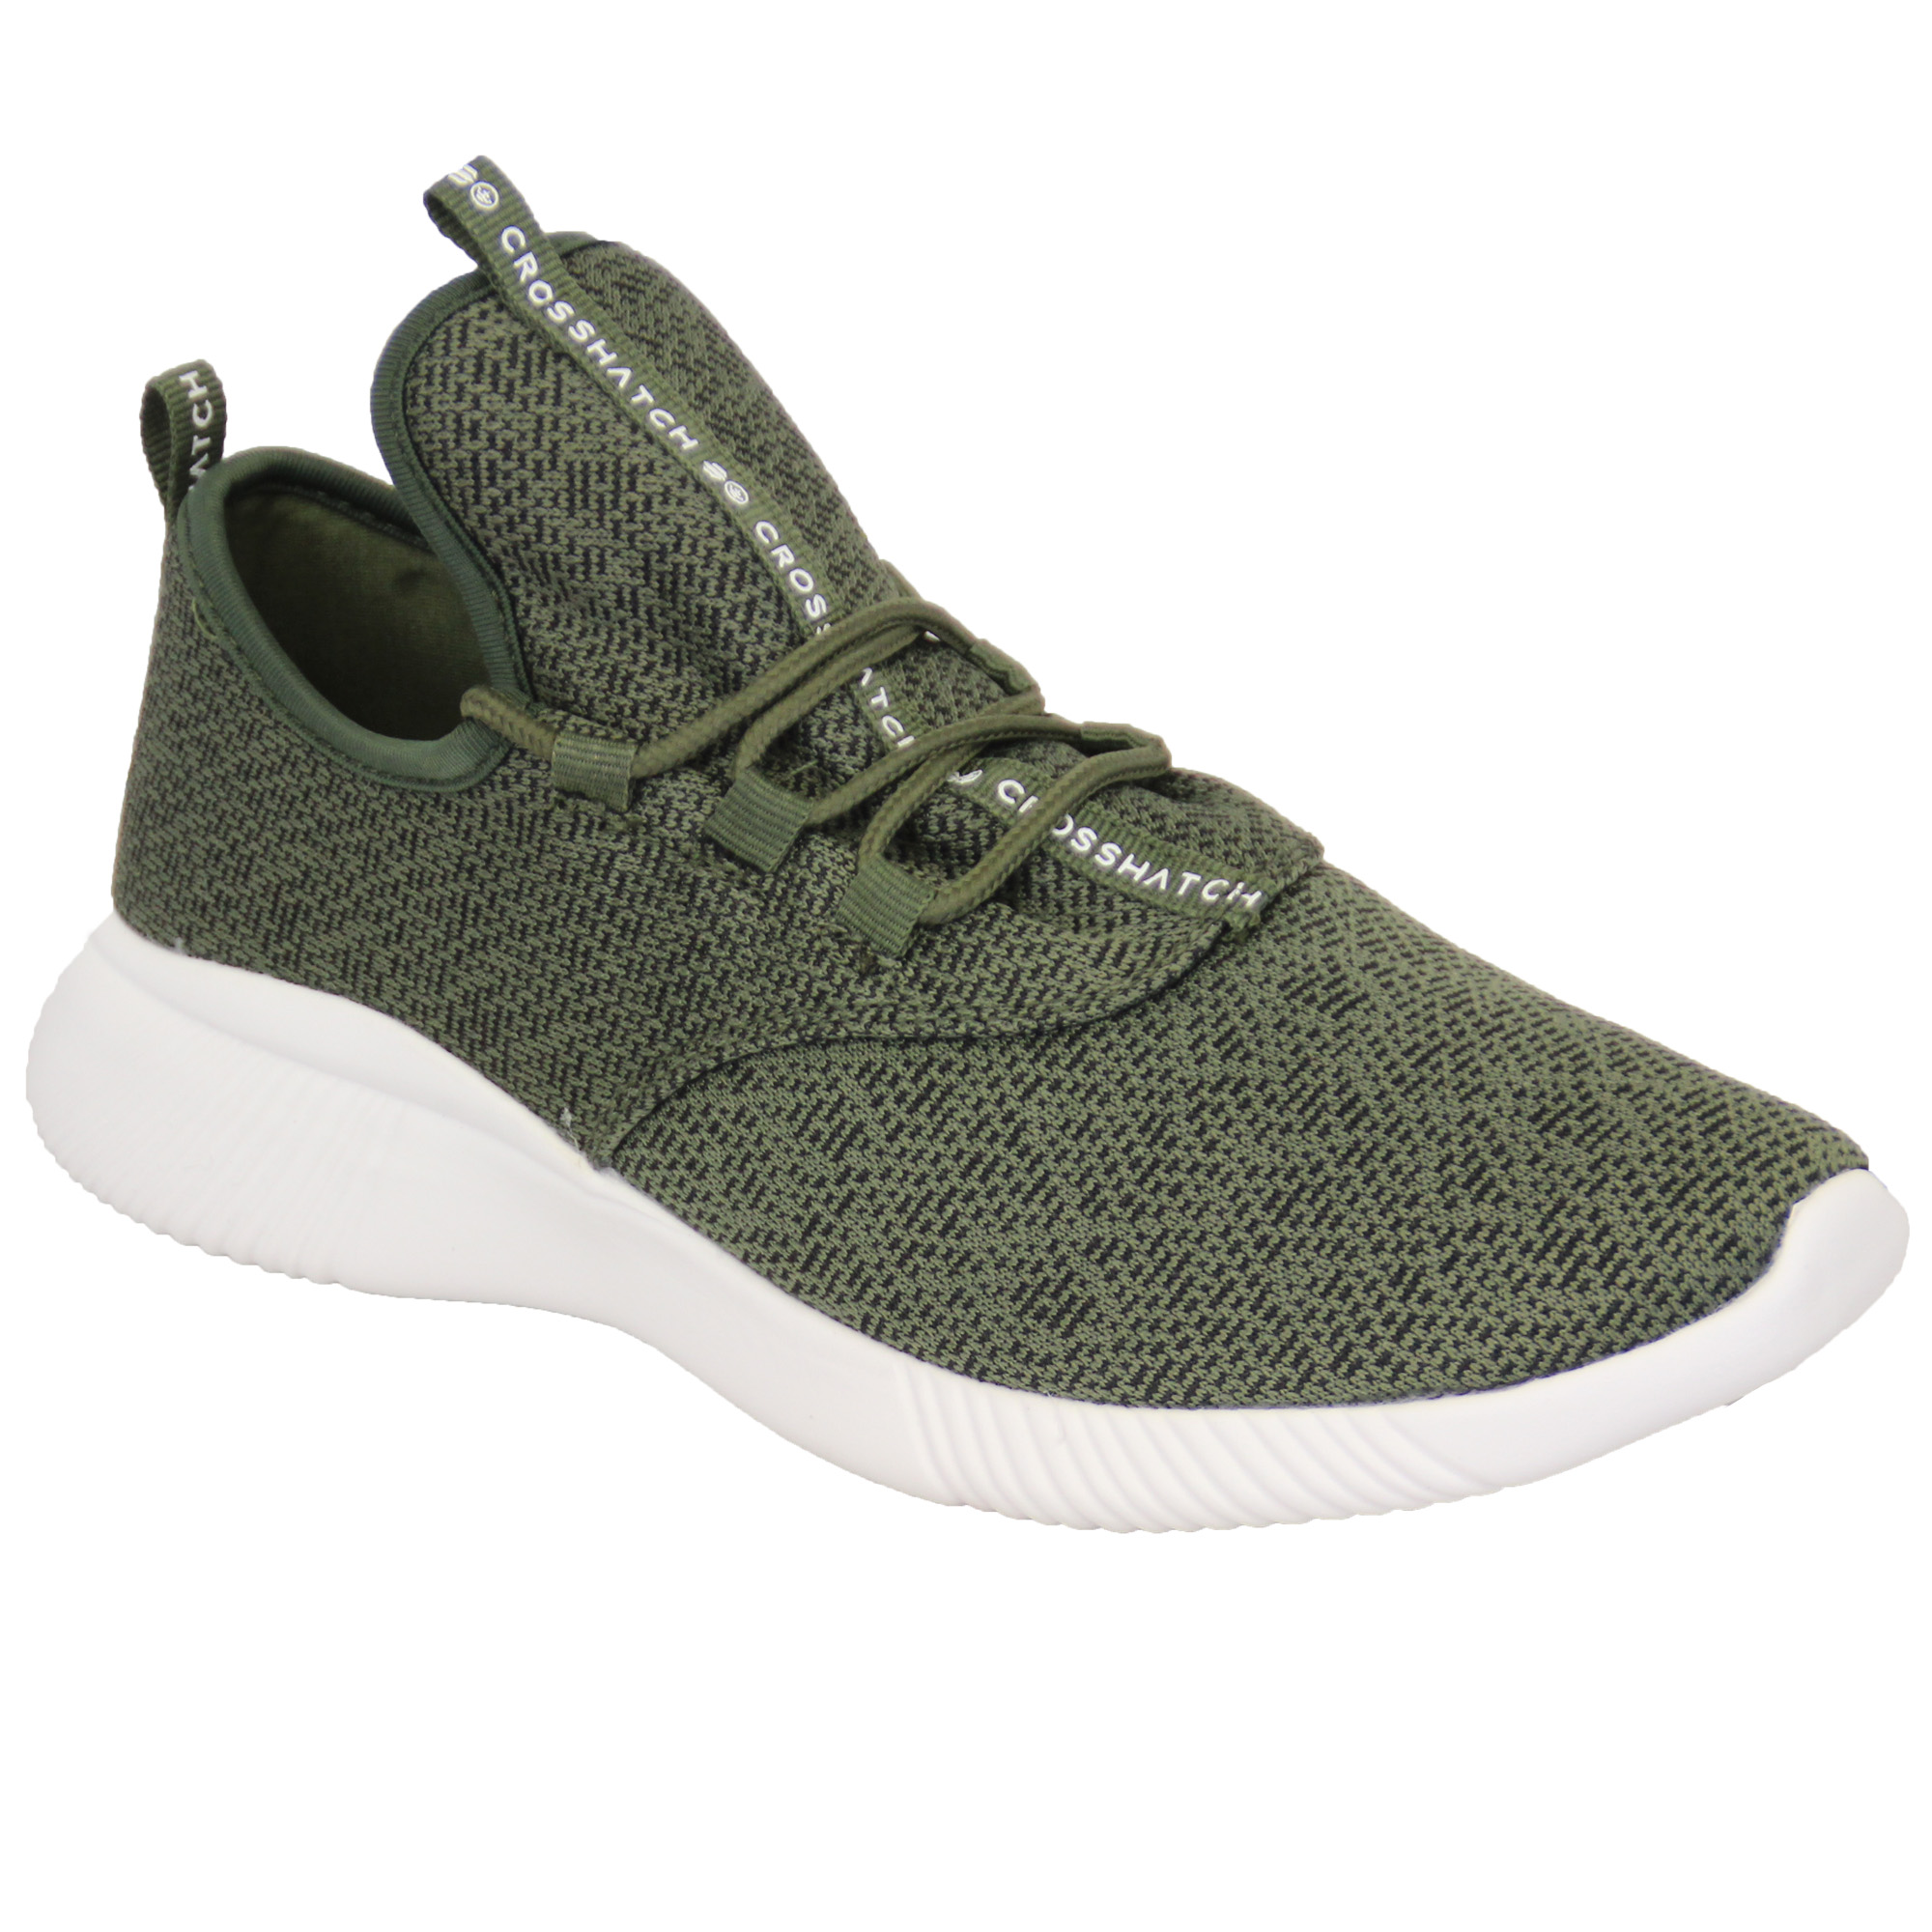 Mens-Trainers-Crosshatch-Running-Speed-Lace-Up-Knit-Mesh-Sports-Gym-Shoes-Casual thumbnail 5